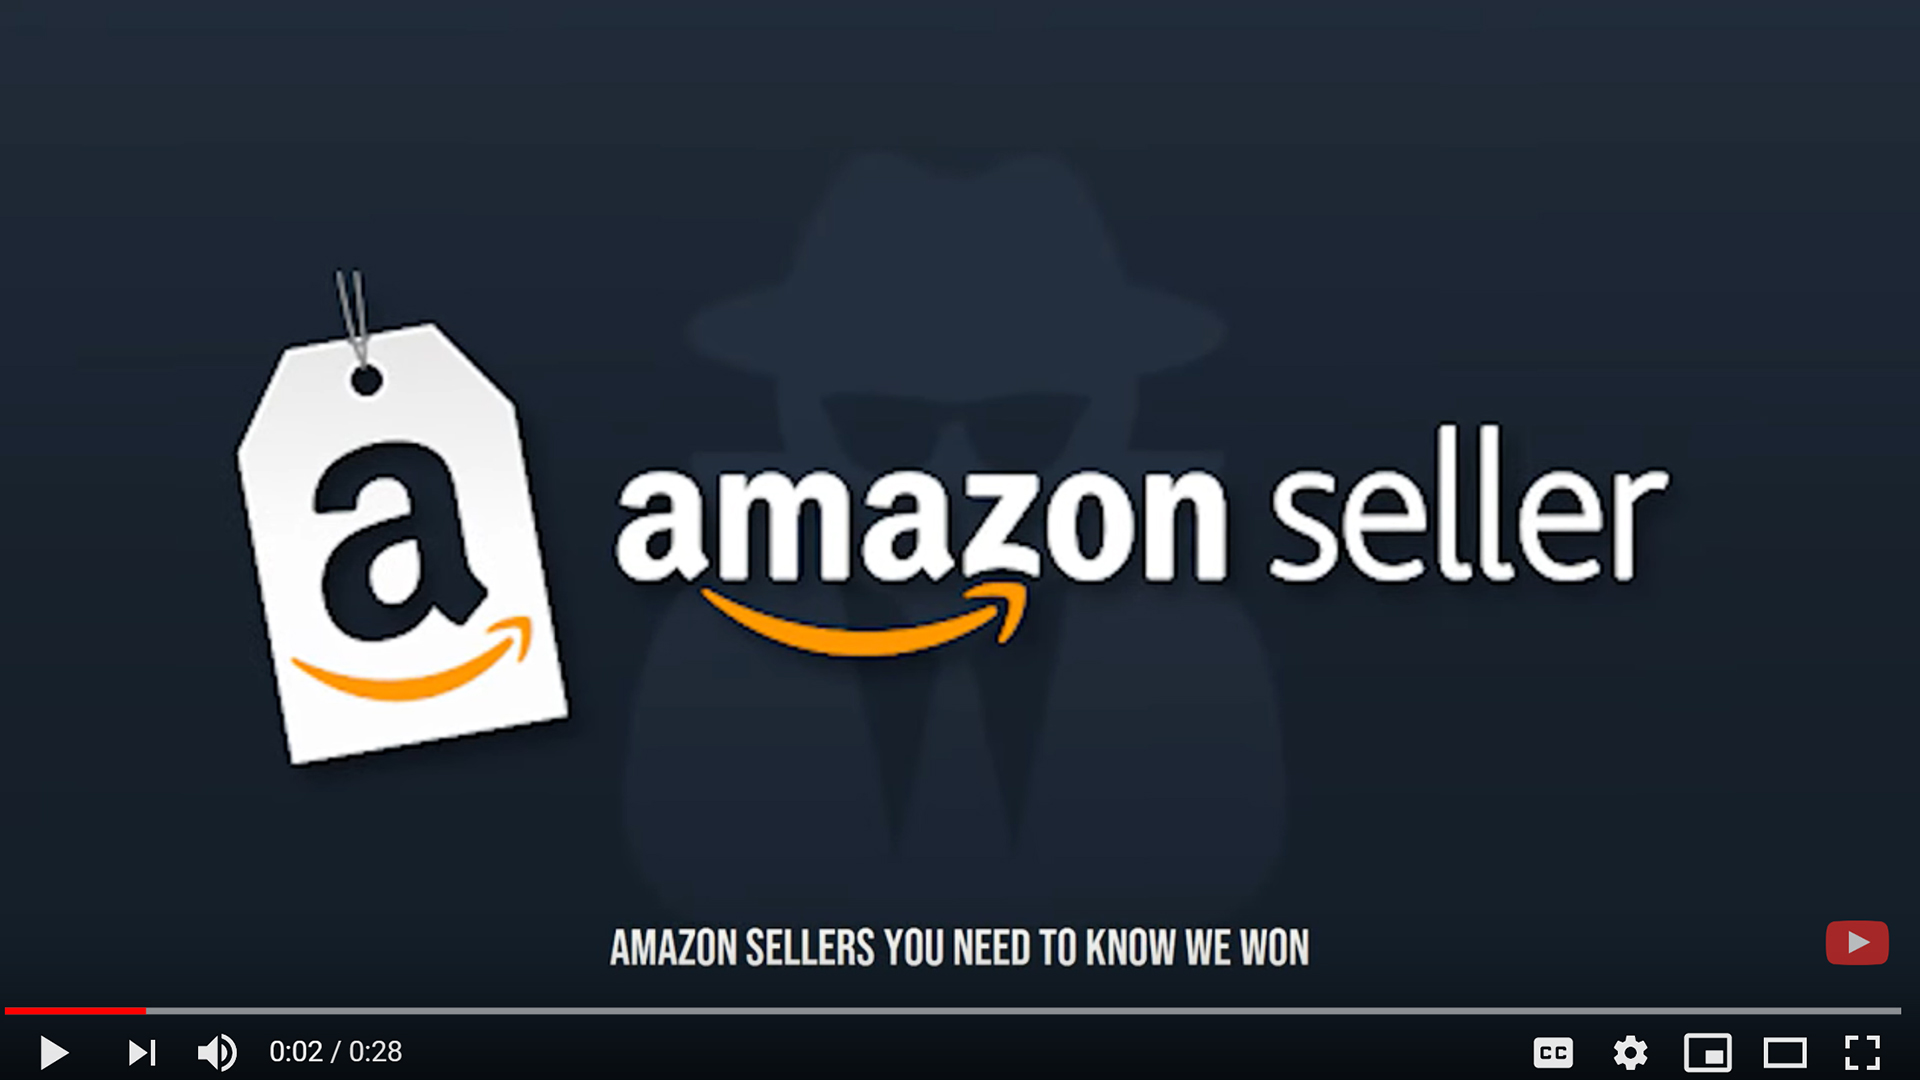 Amazon sellers accused of price gouging